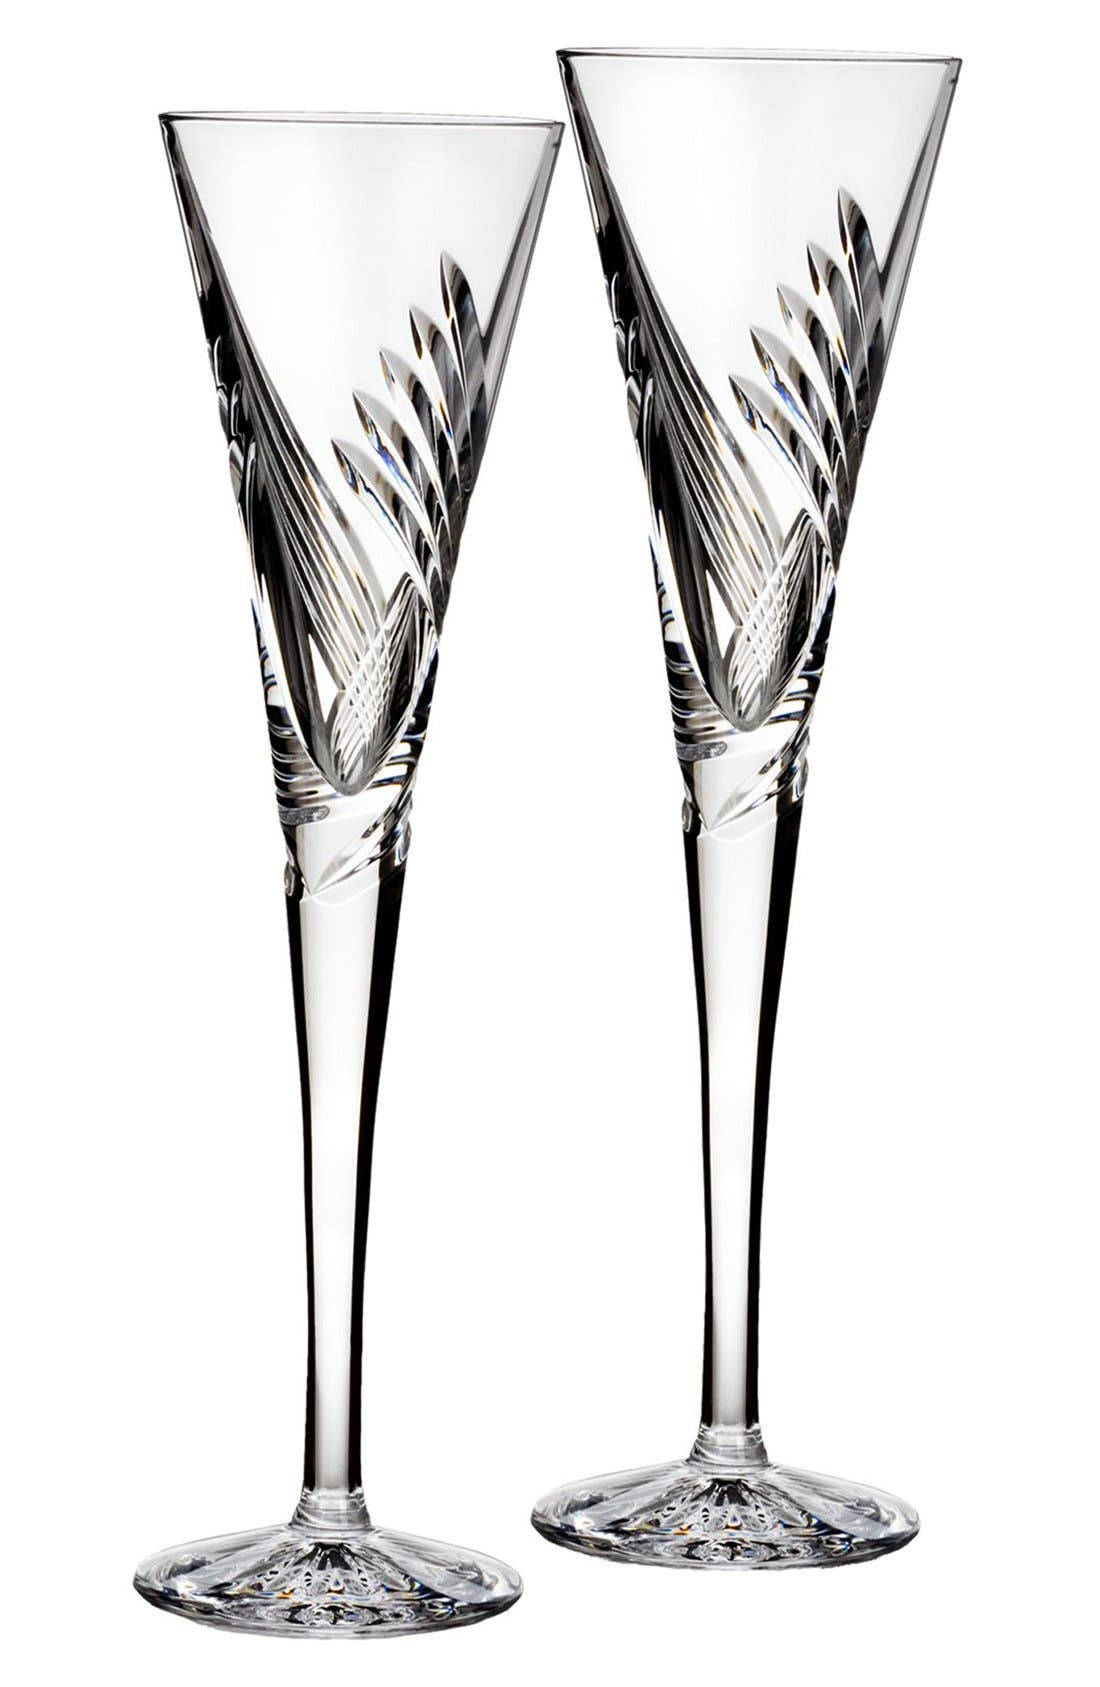 Main Image - Waterford 'Wishes Beginnings' Lead Crystal Toasting Flutes (Set of 2)